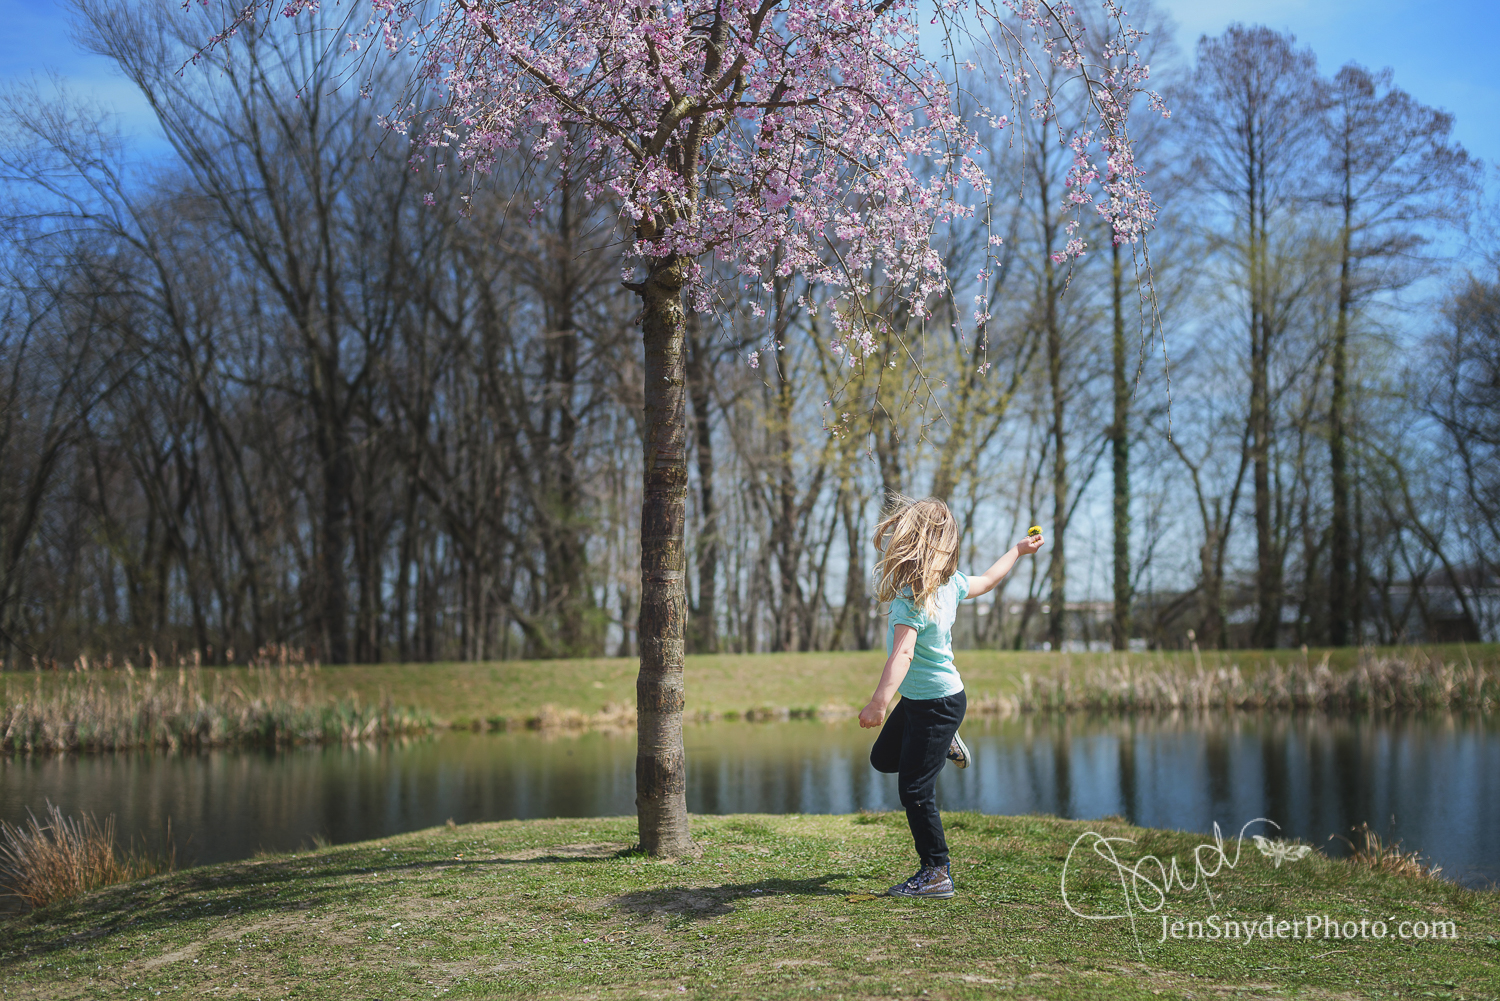 Baltimore, Maryland lifestyle candid childrens photographer Jen Snyder http://www.jensnyderphoto.com